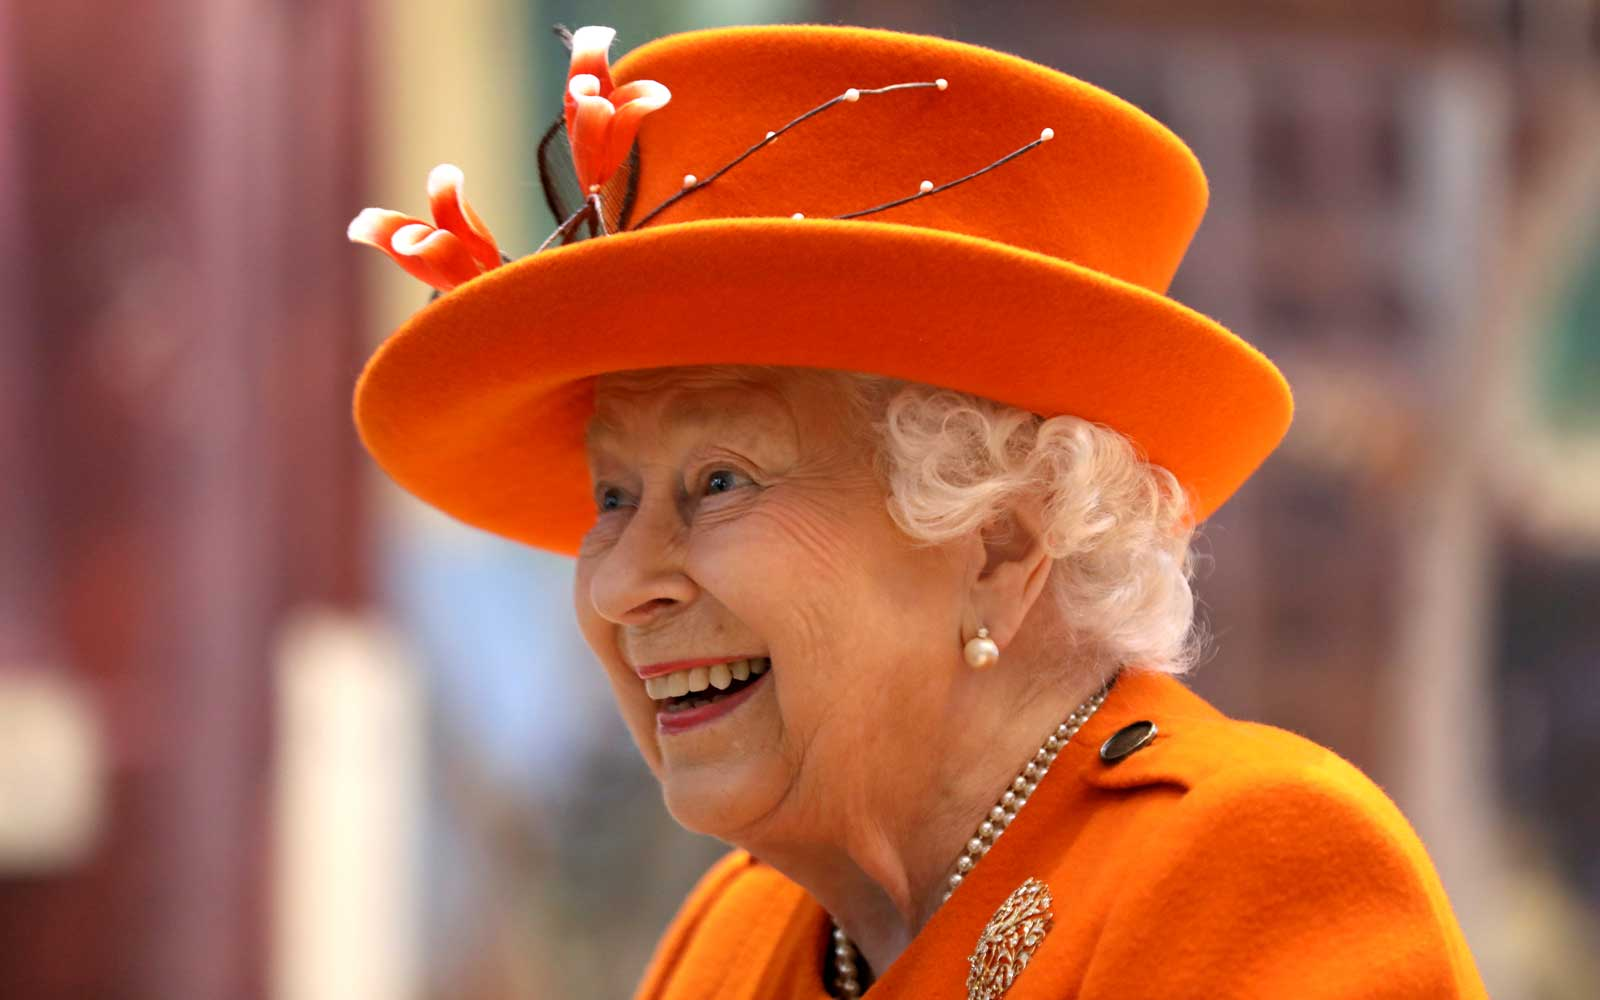 Watch Queen Elizabeth Proudly Make Her First Instagram Post